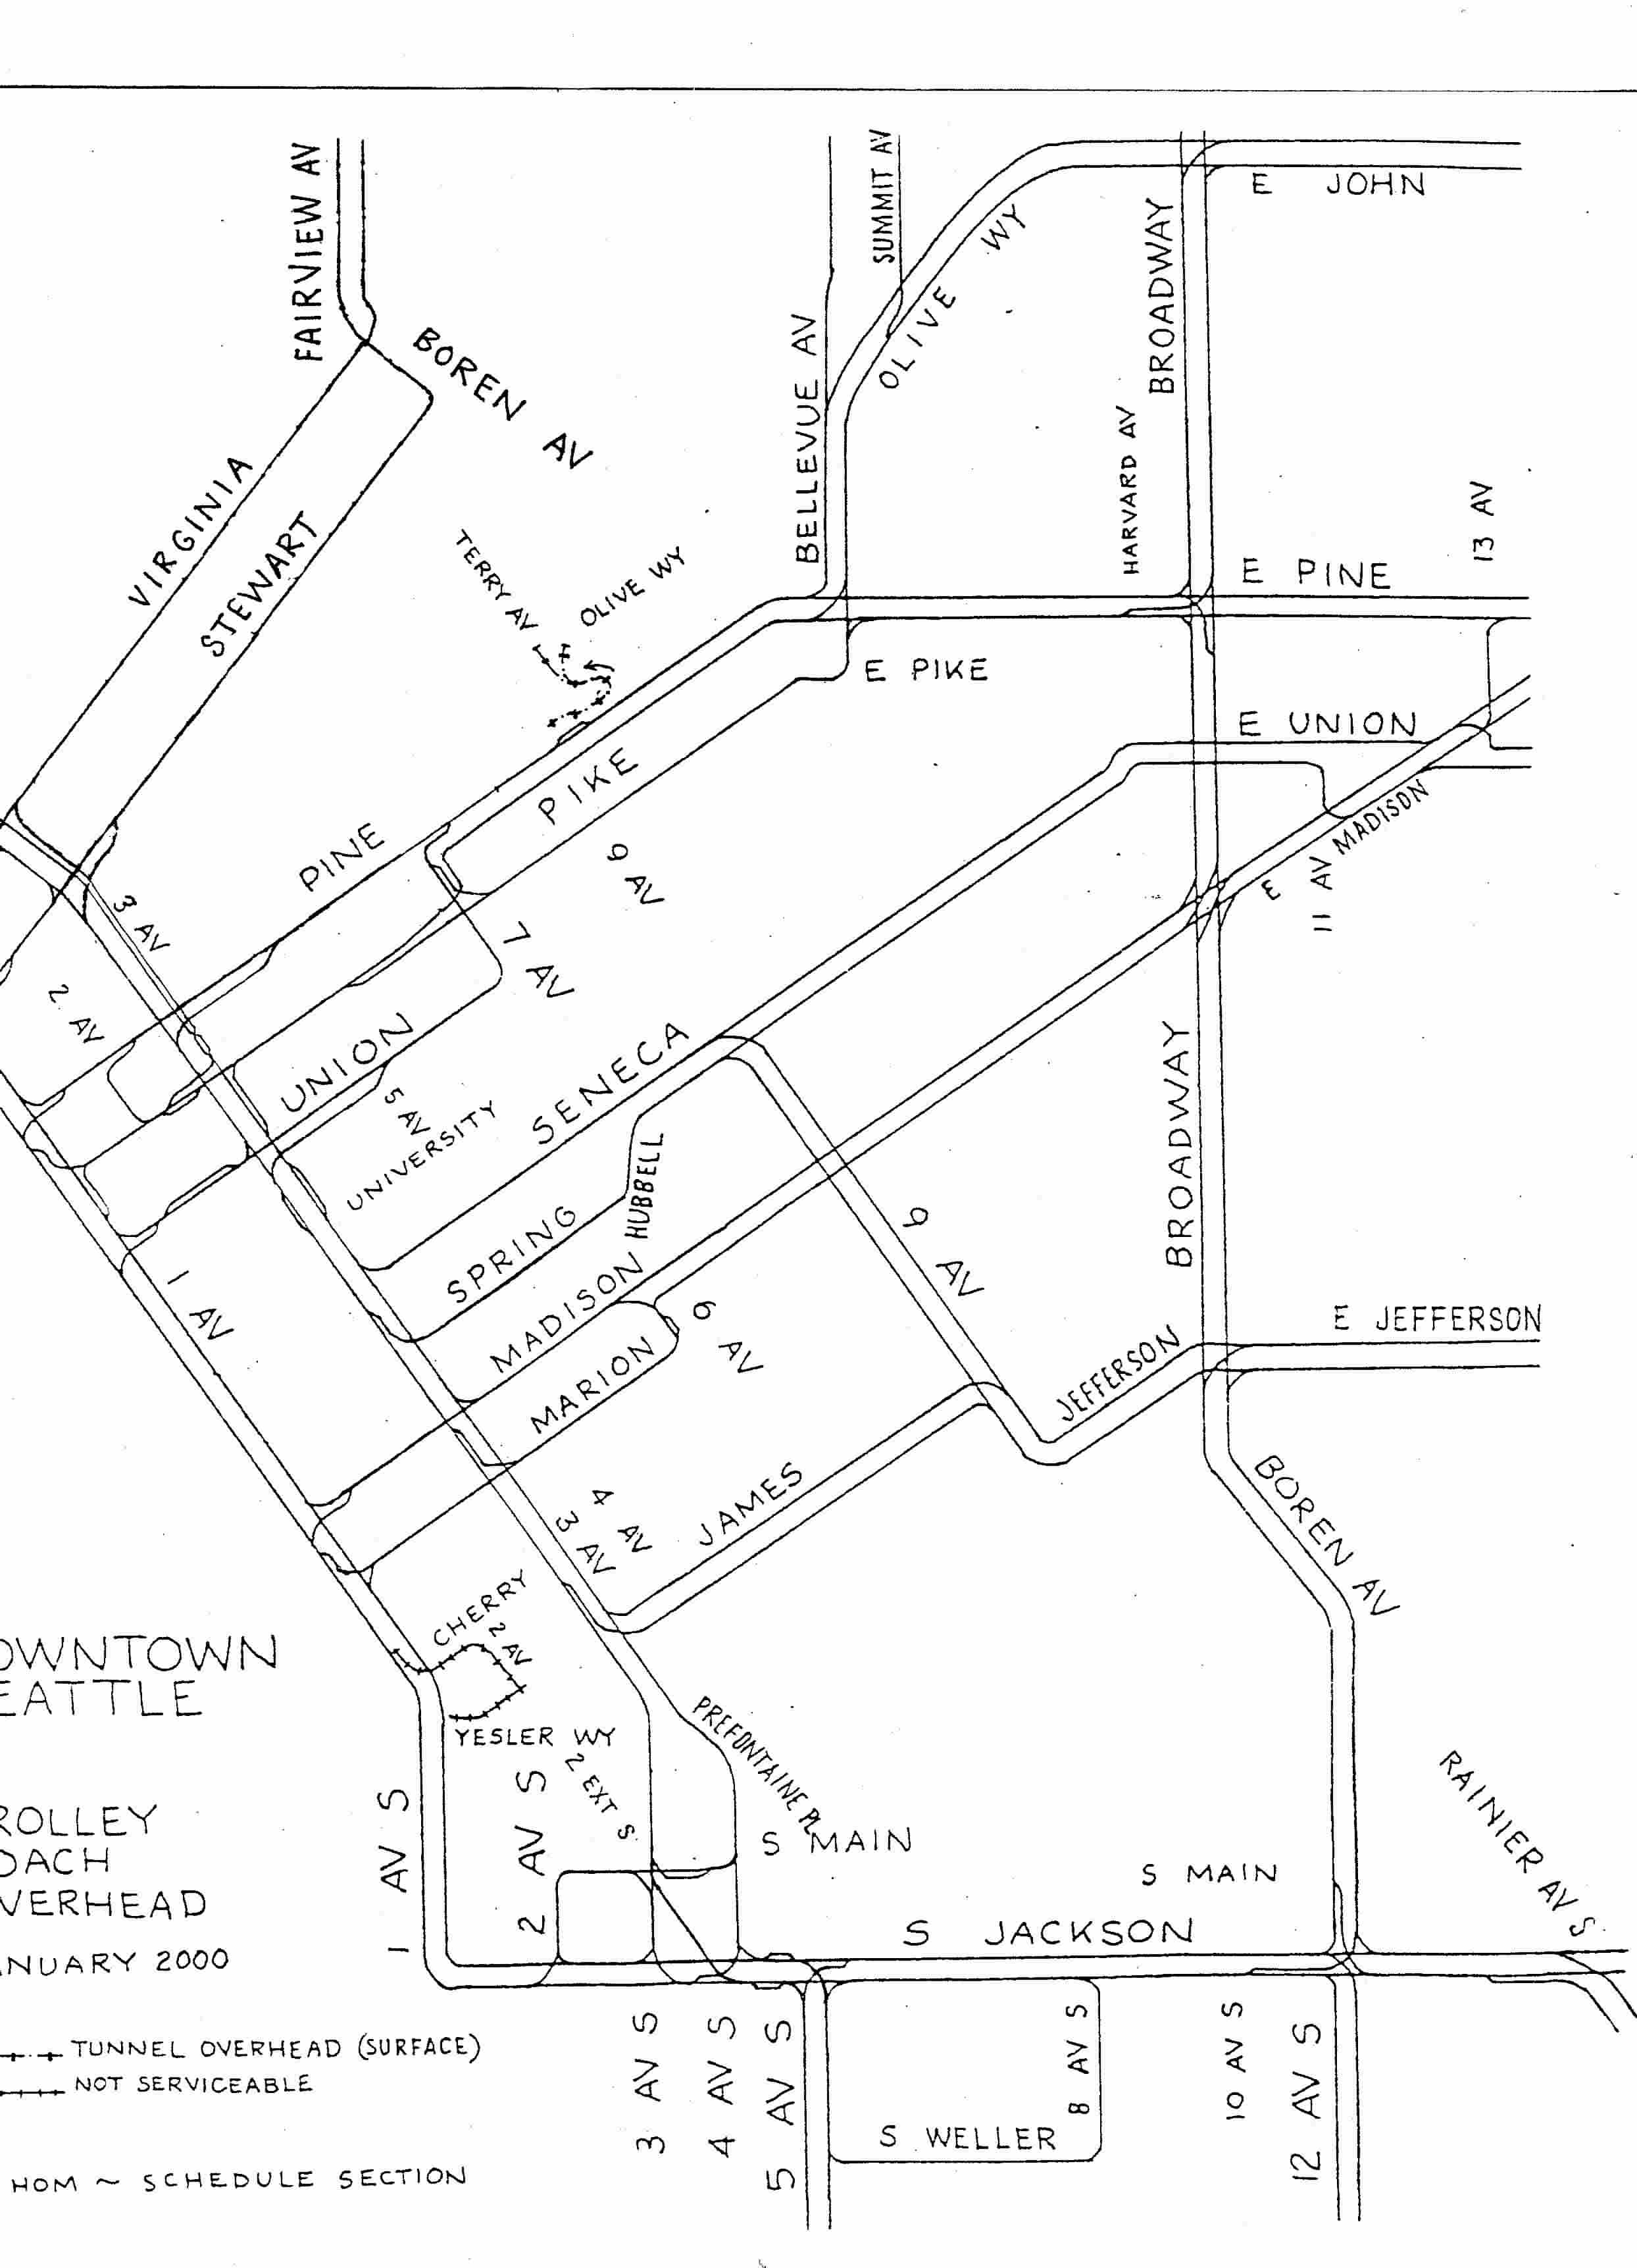 Seattle Maps and Schedules